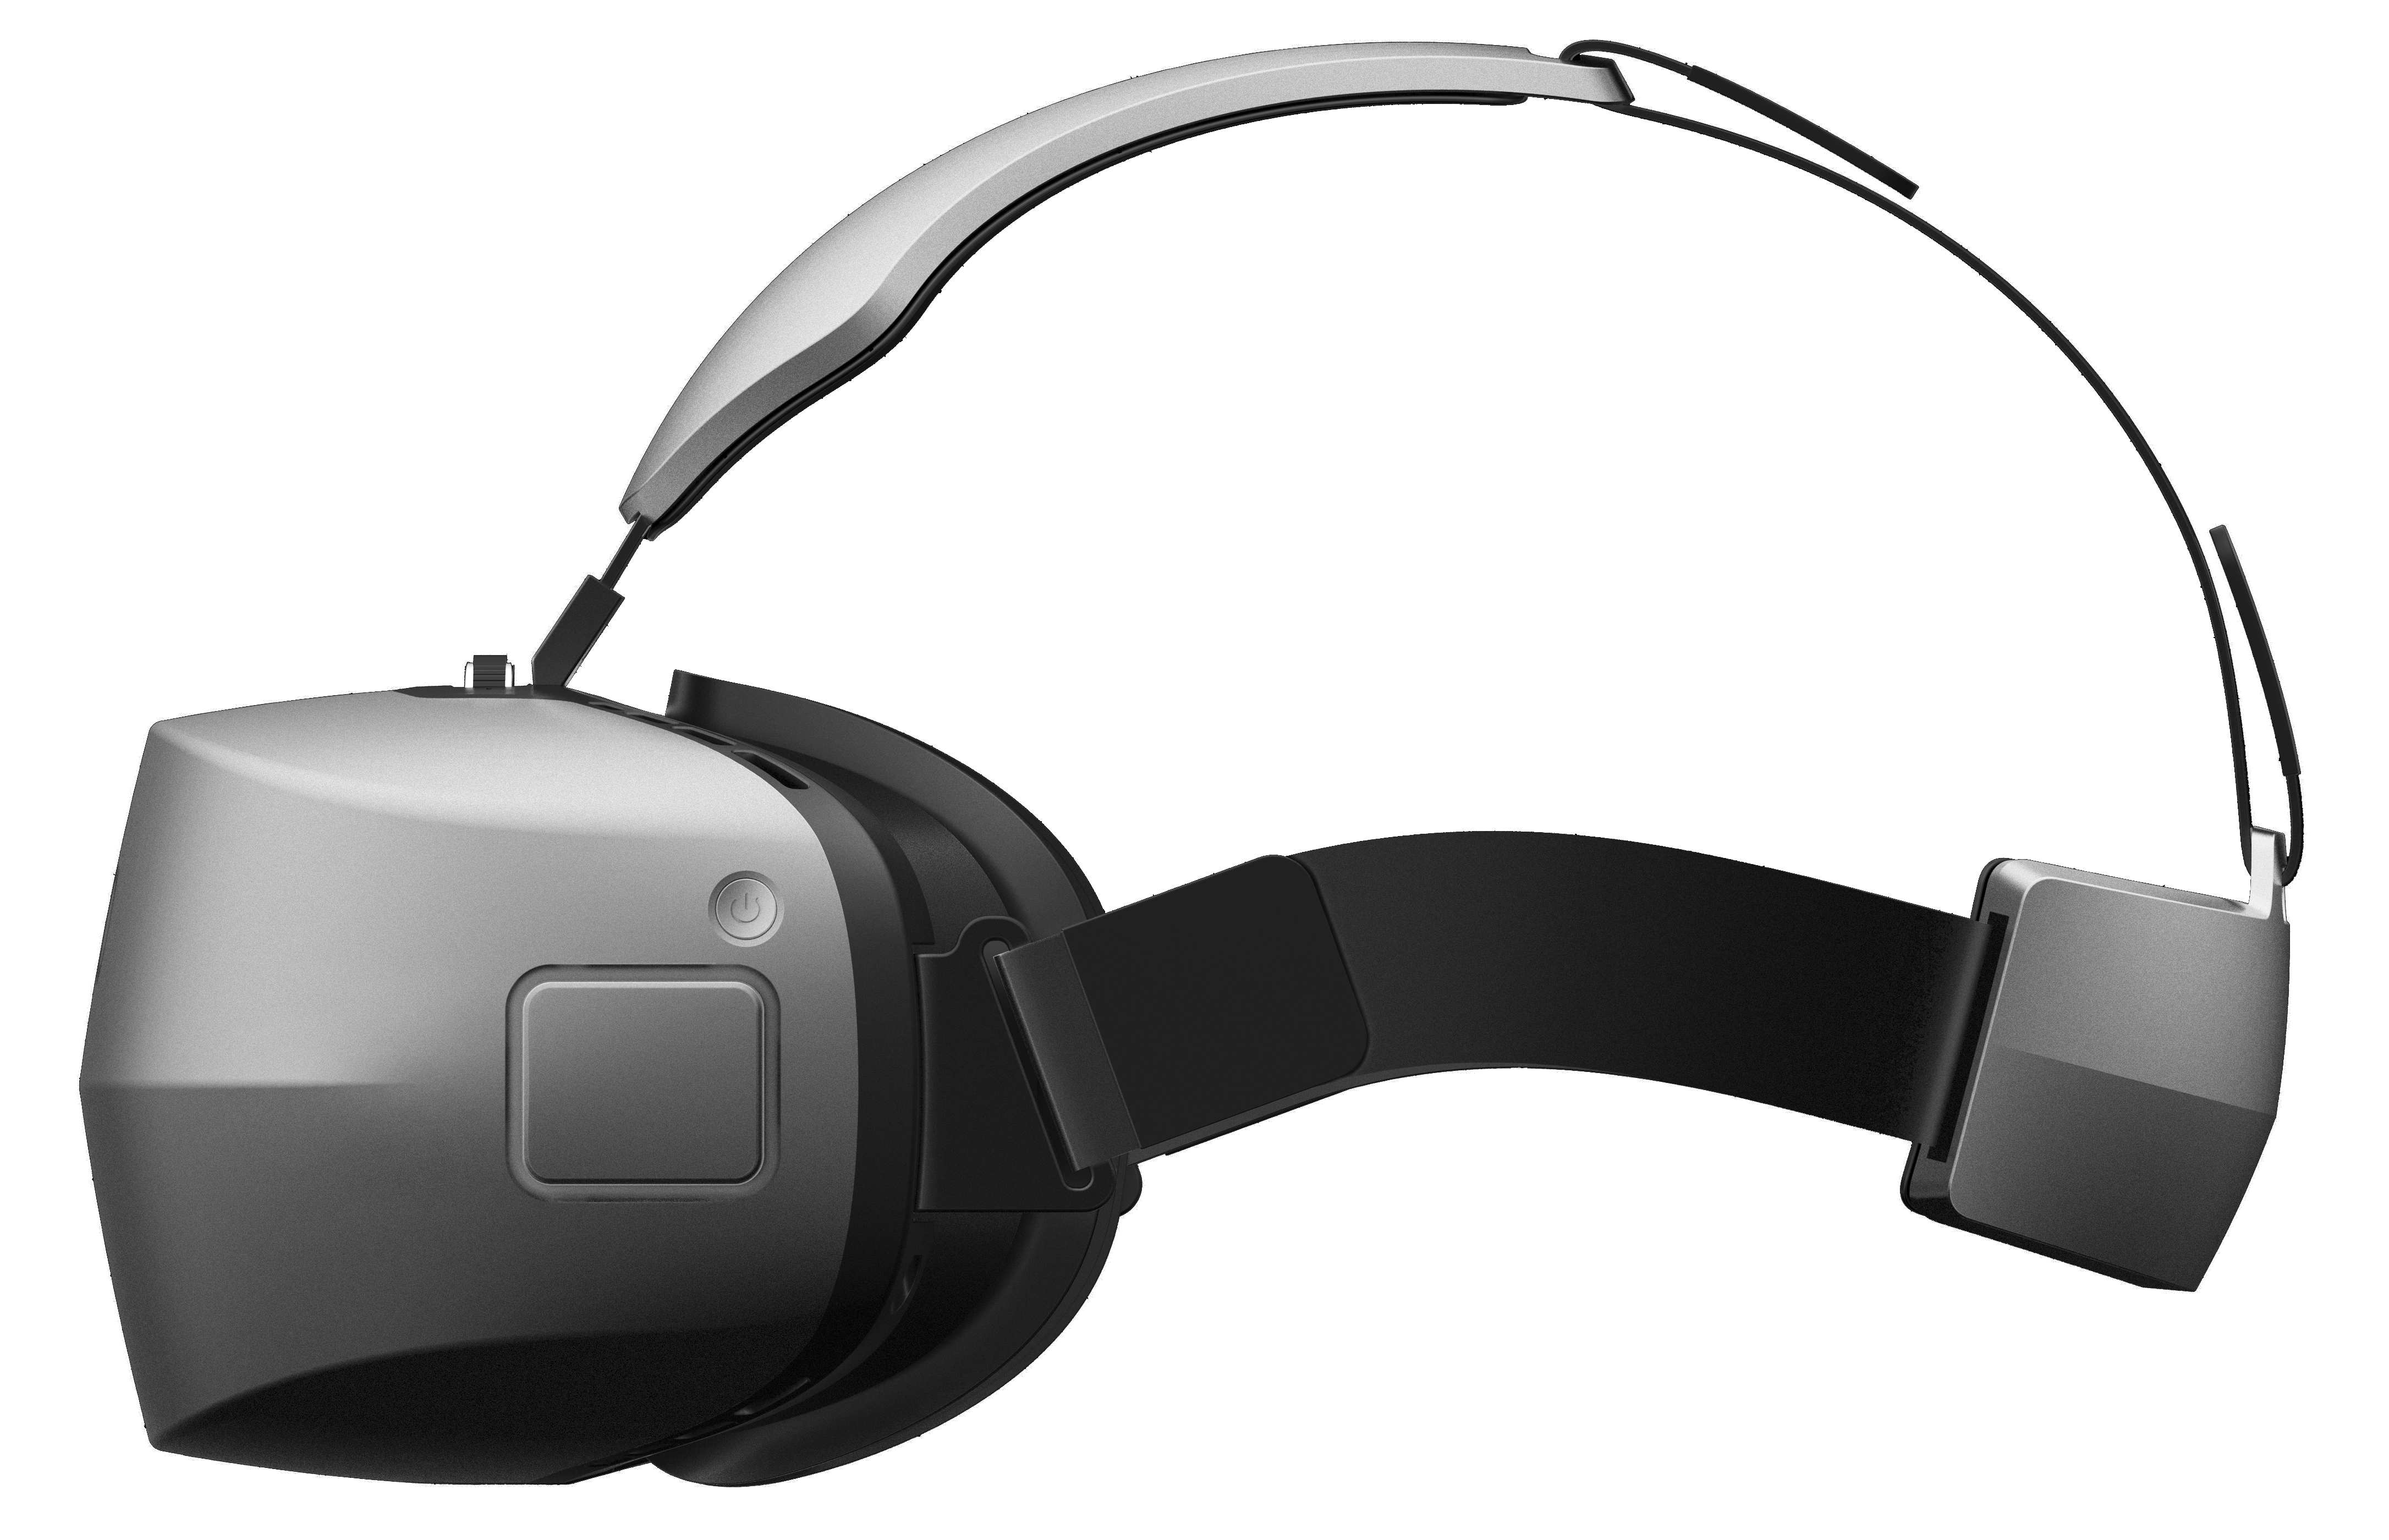 Vr Headset HD PNG - 95956